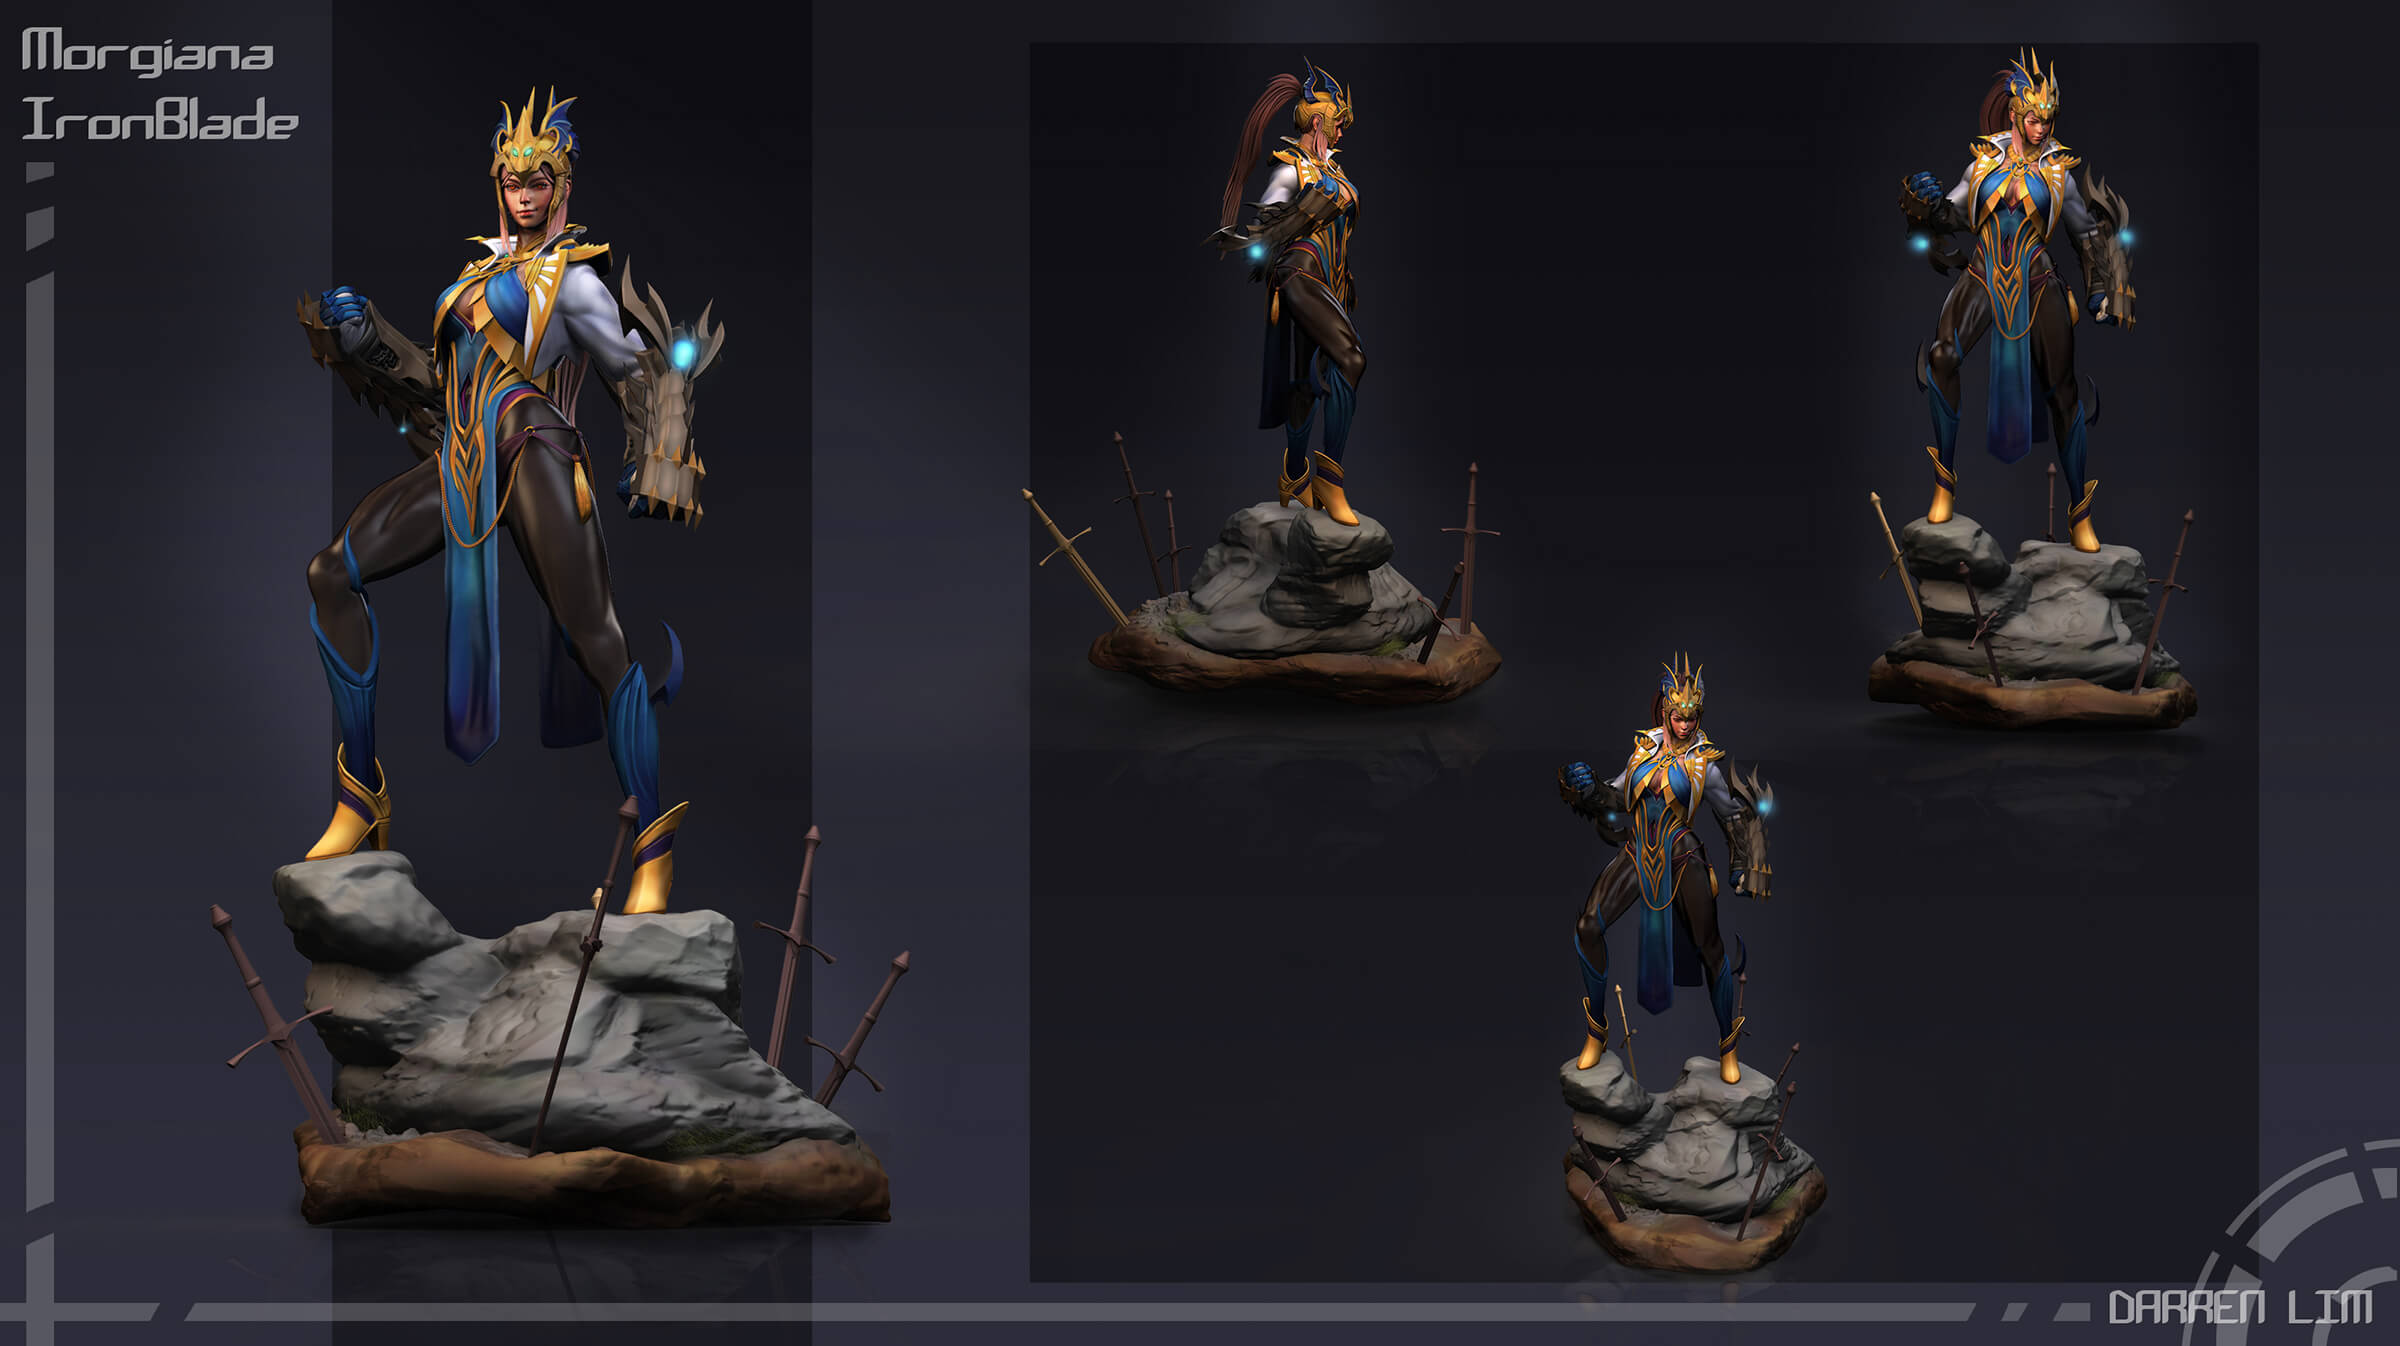 Multiple views of an elaborately costumed woman standing on a rock